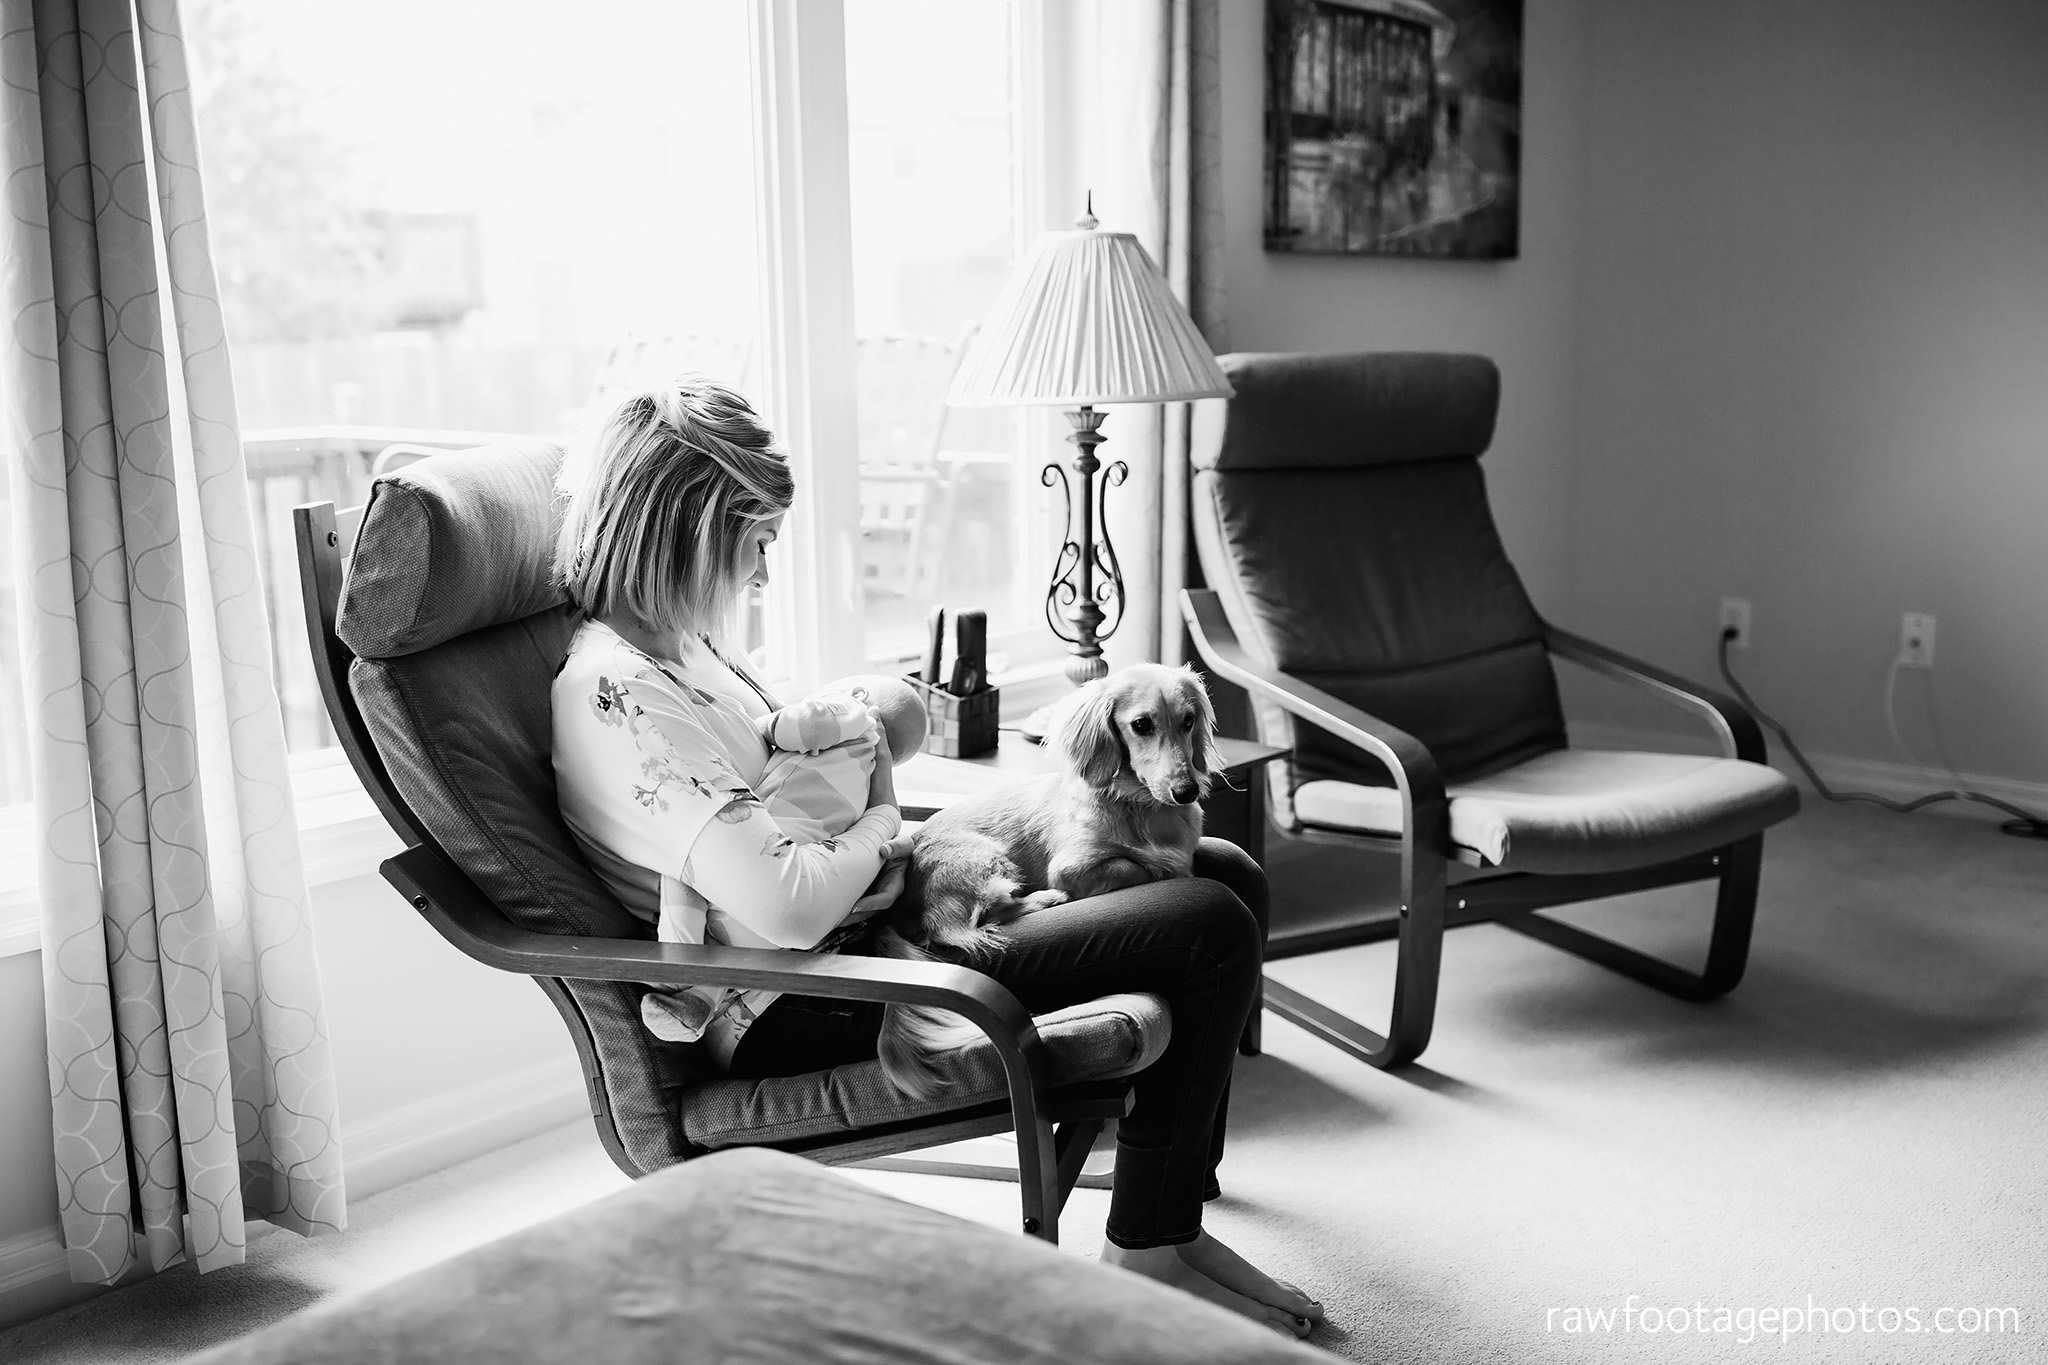 london_ontario_newborn_photographer-newborn_lifestyle_session-in_home_newborn_photos-raw_footage_photography001.jpg